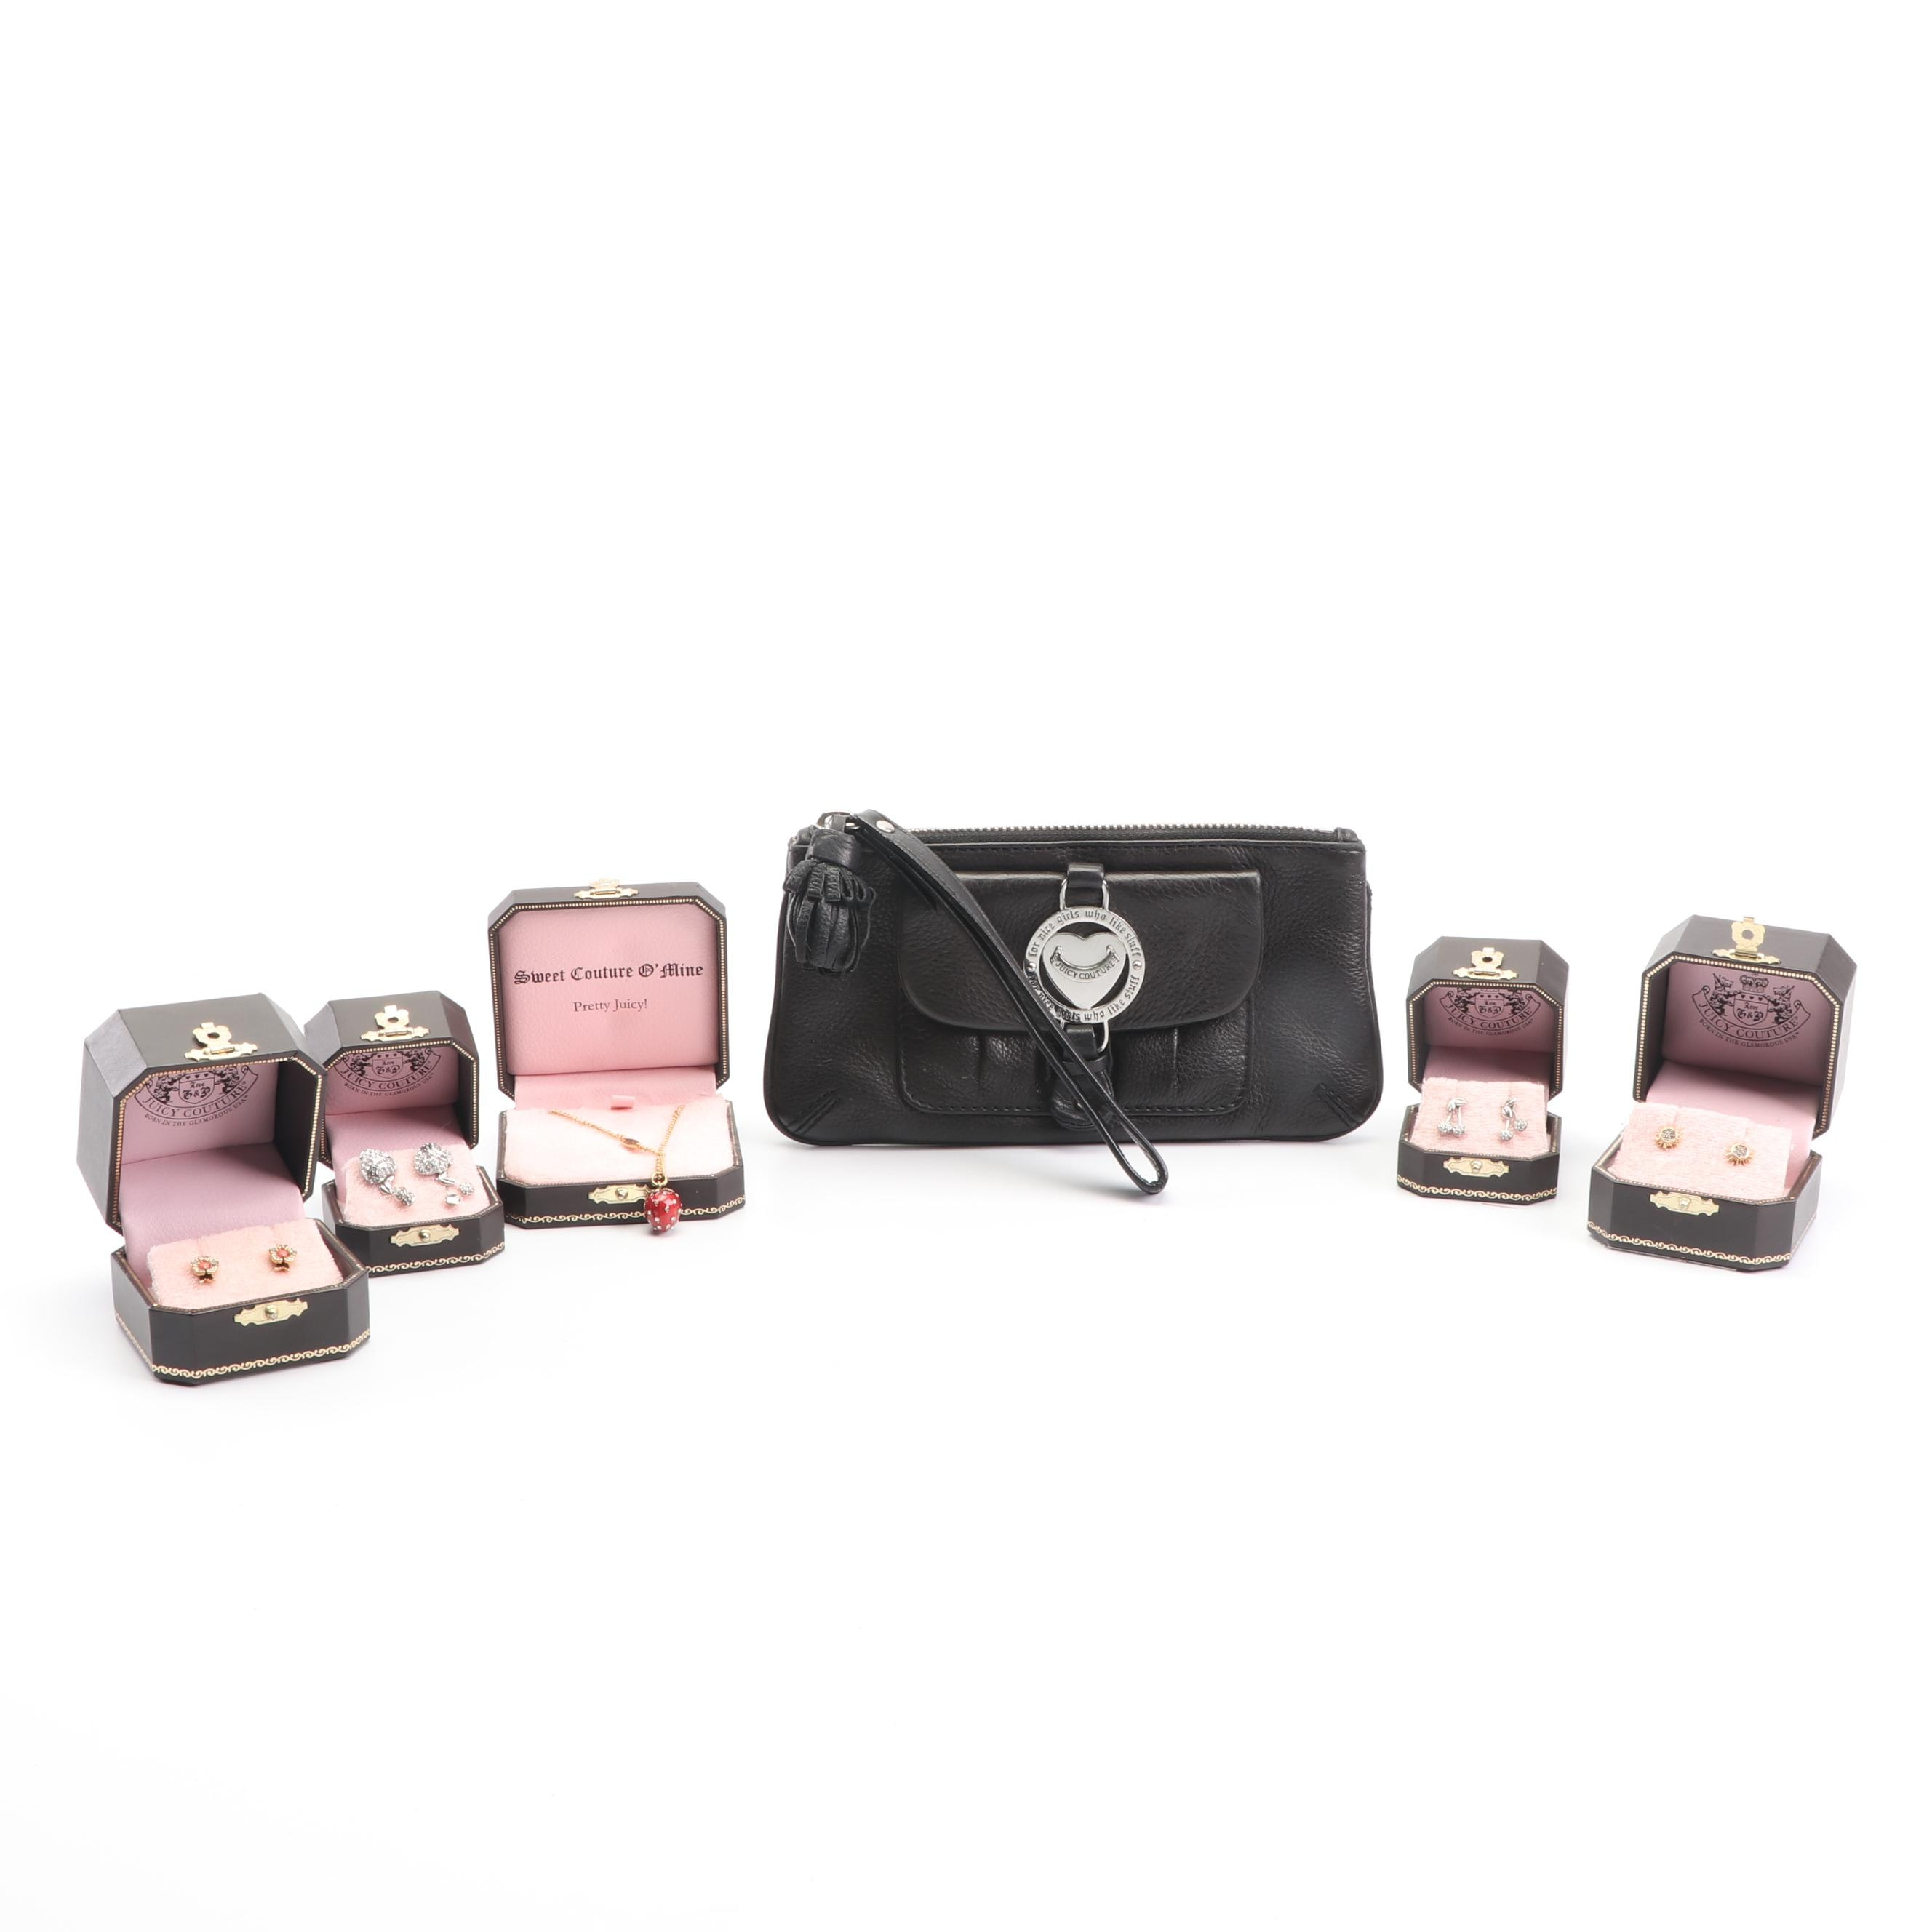 Juicy Couture Clutch, Necklace and Earrings